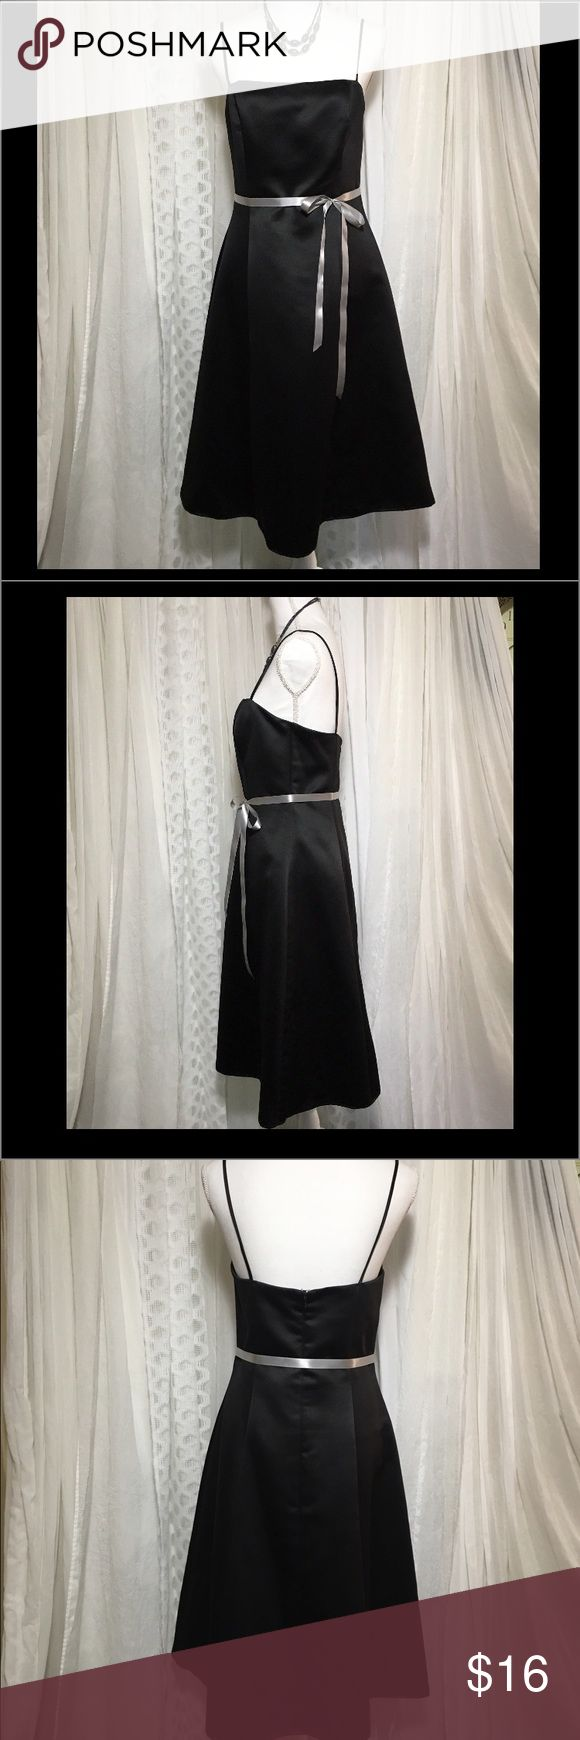 Jessica McClintock black size 10 dress Black dress size 10. This is a classic satin black dress with spaghetti straps. Has a few small snags on bottom front of dress, Inside lining has some discoloration and, front right strap shows the stitching in the inside is not visible when wearing see photo zips up the back.  Chest 16.5 inc Length 35 inc 100% polyester Fully lined. Hits me midcalf I'm 5'1. If you need a simple black dress for a bridesmaid, homecoming, choir this is a perfect dress. I…